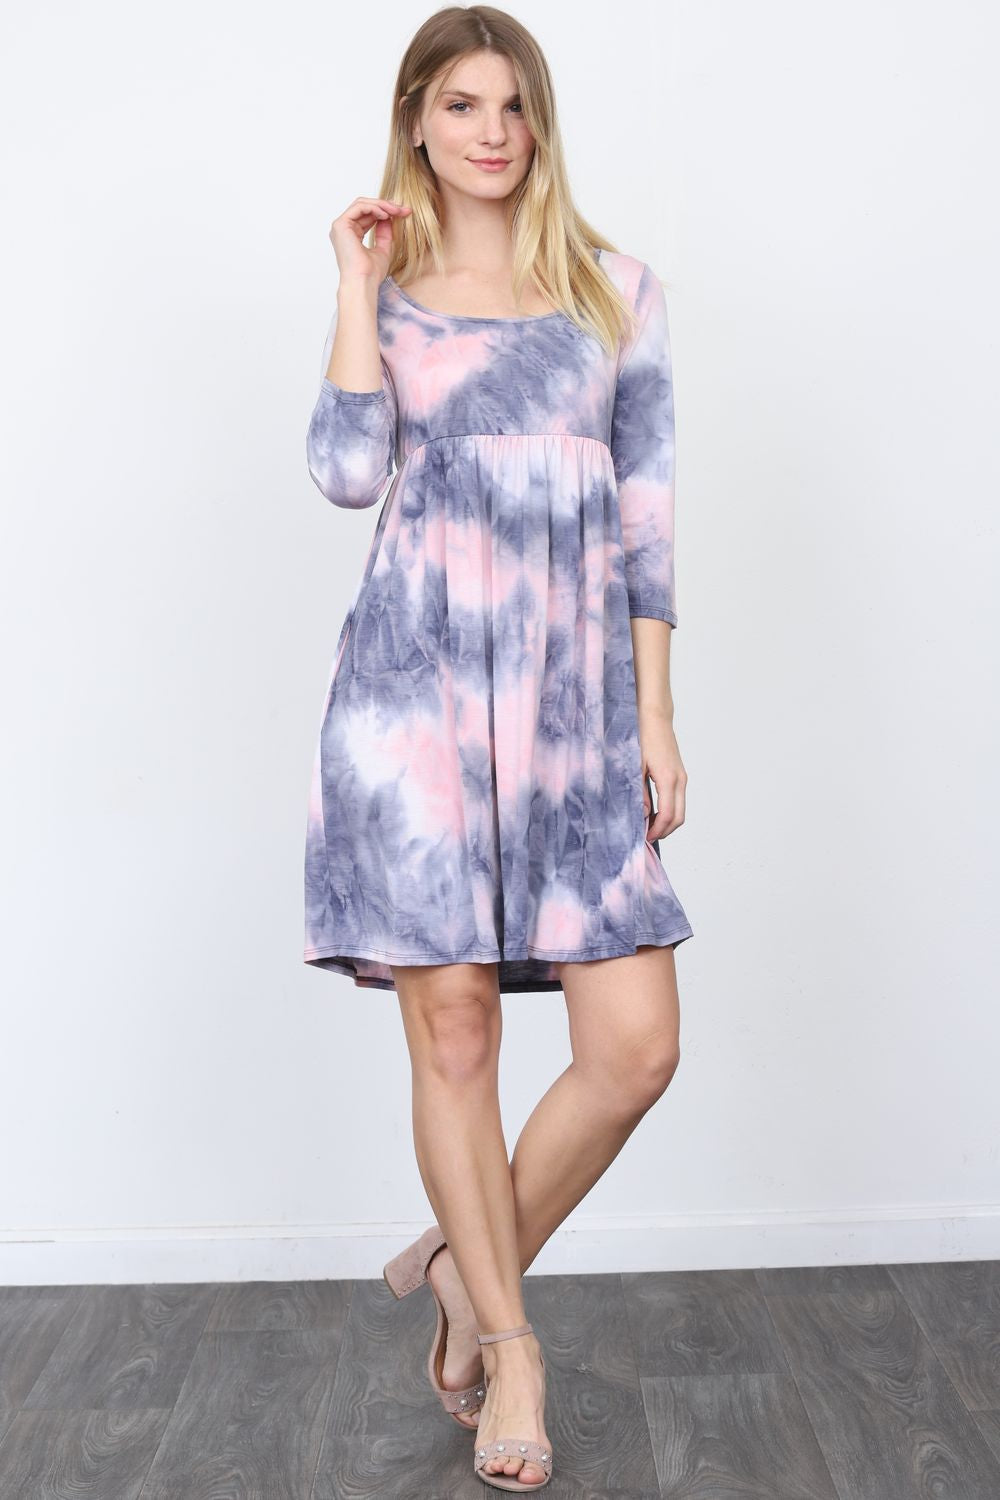 Lavender Tie-Dye Mini Dress